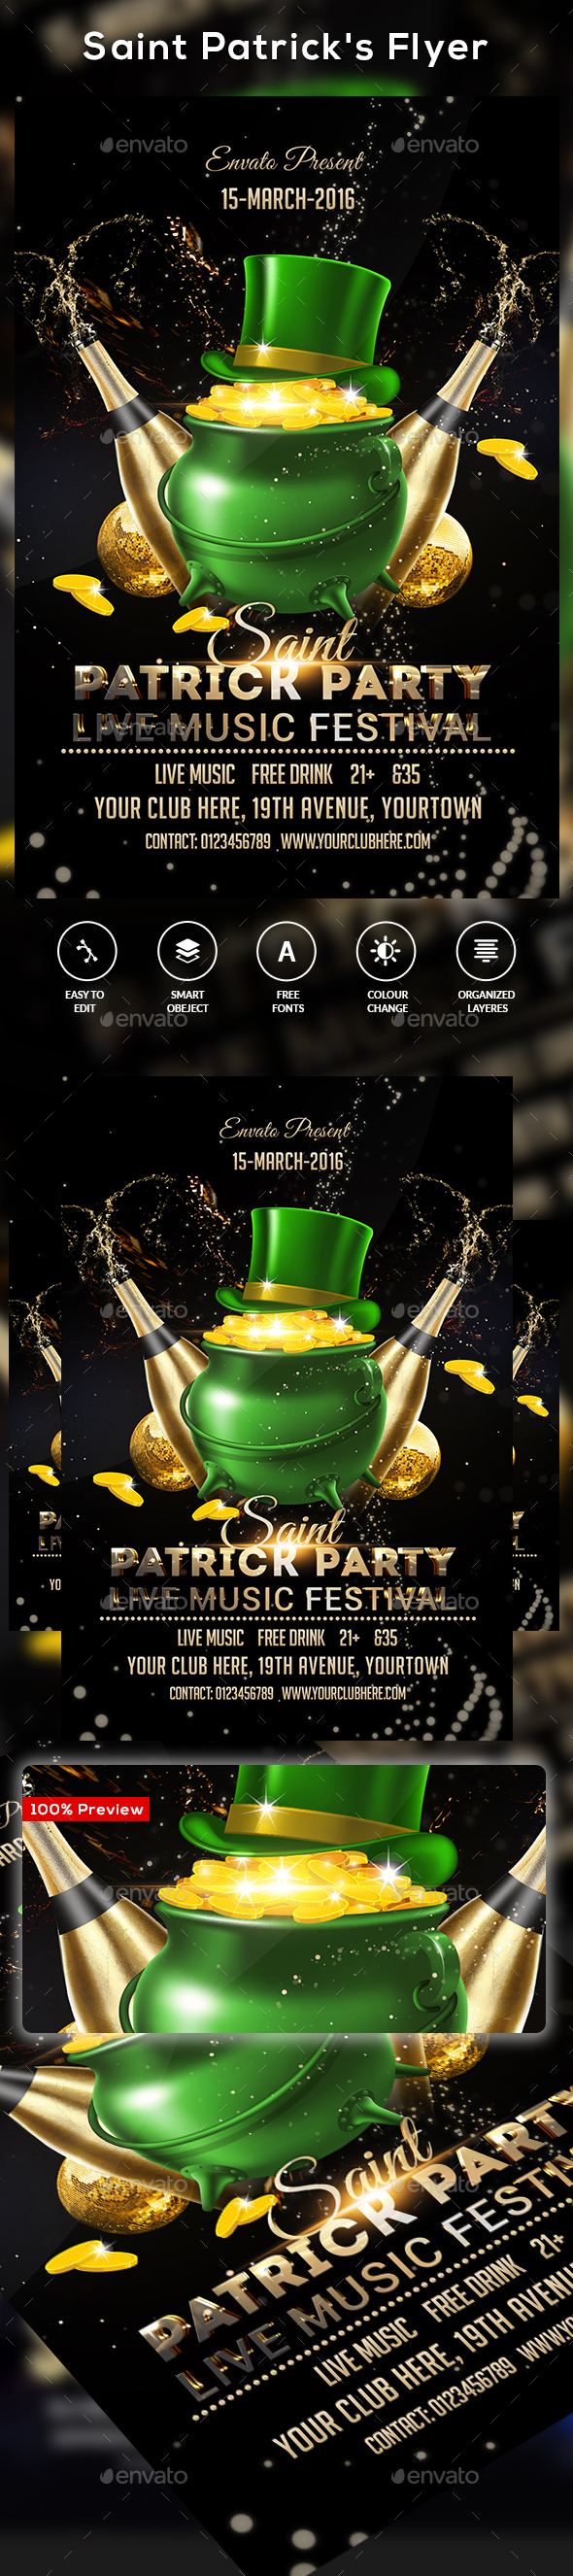 Saint Patrick's Day Flyer - Clubs & Parties Events